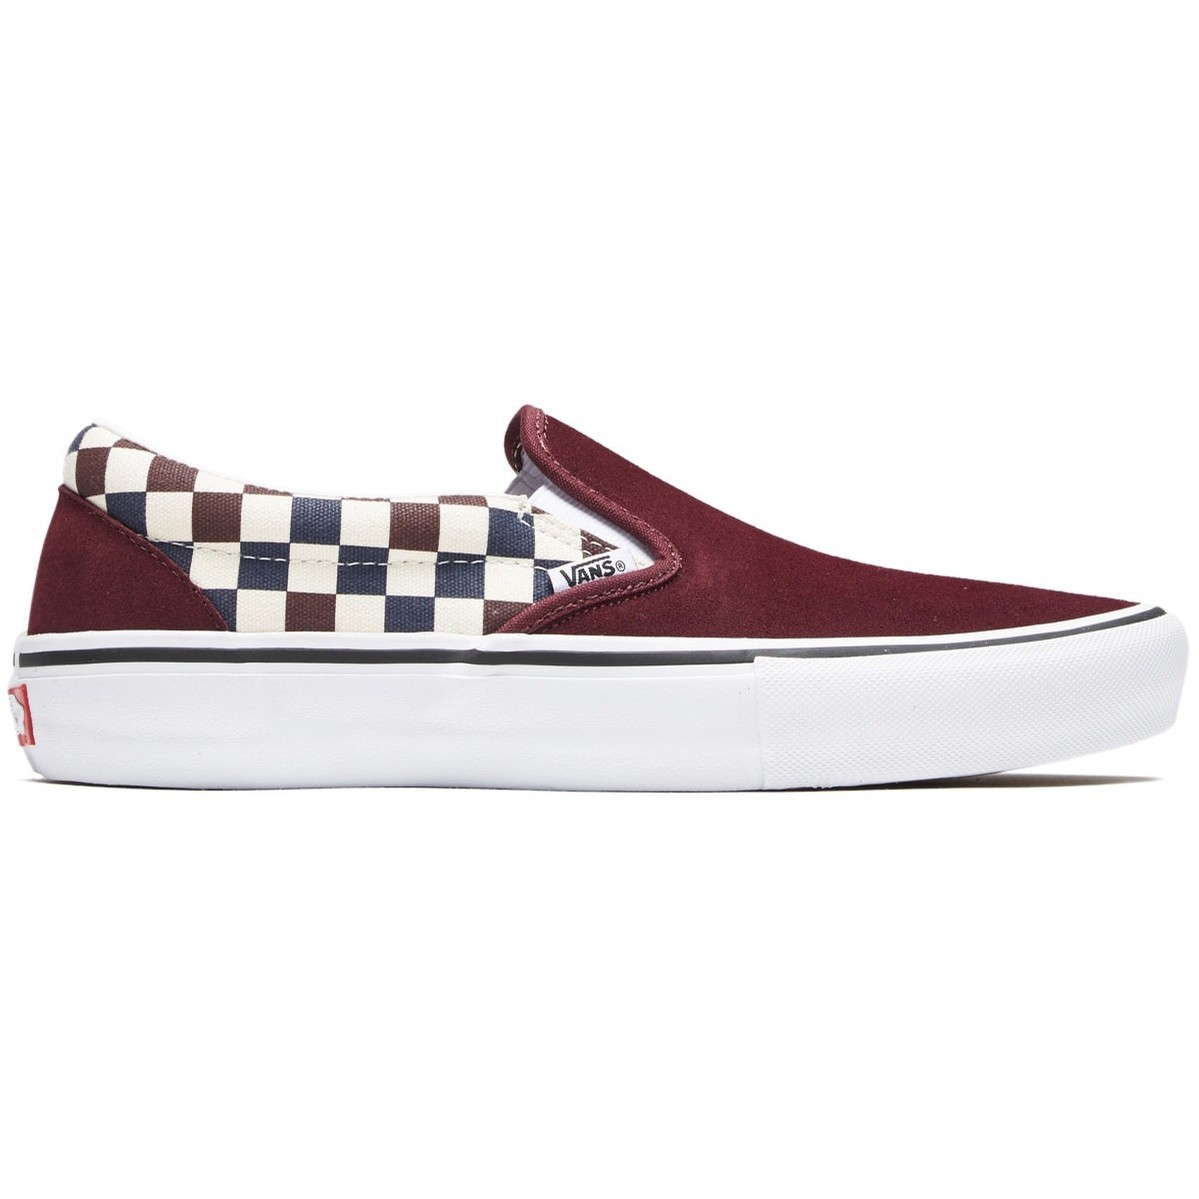 Slip-On Pro (Multi Checker) Port Royale/Dress Blues